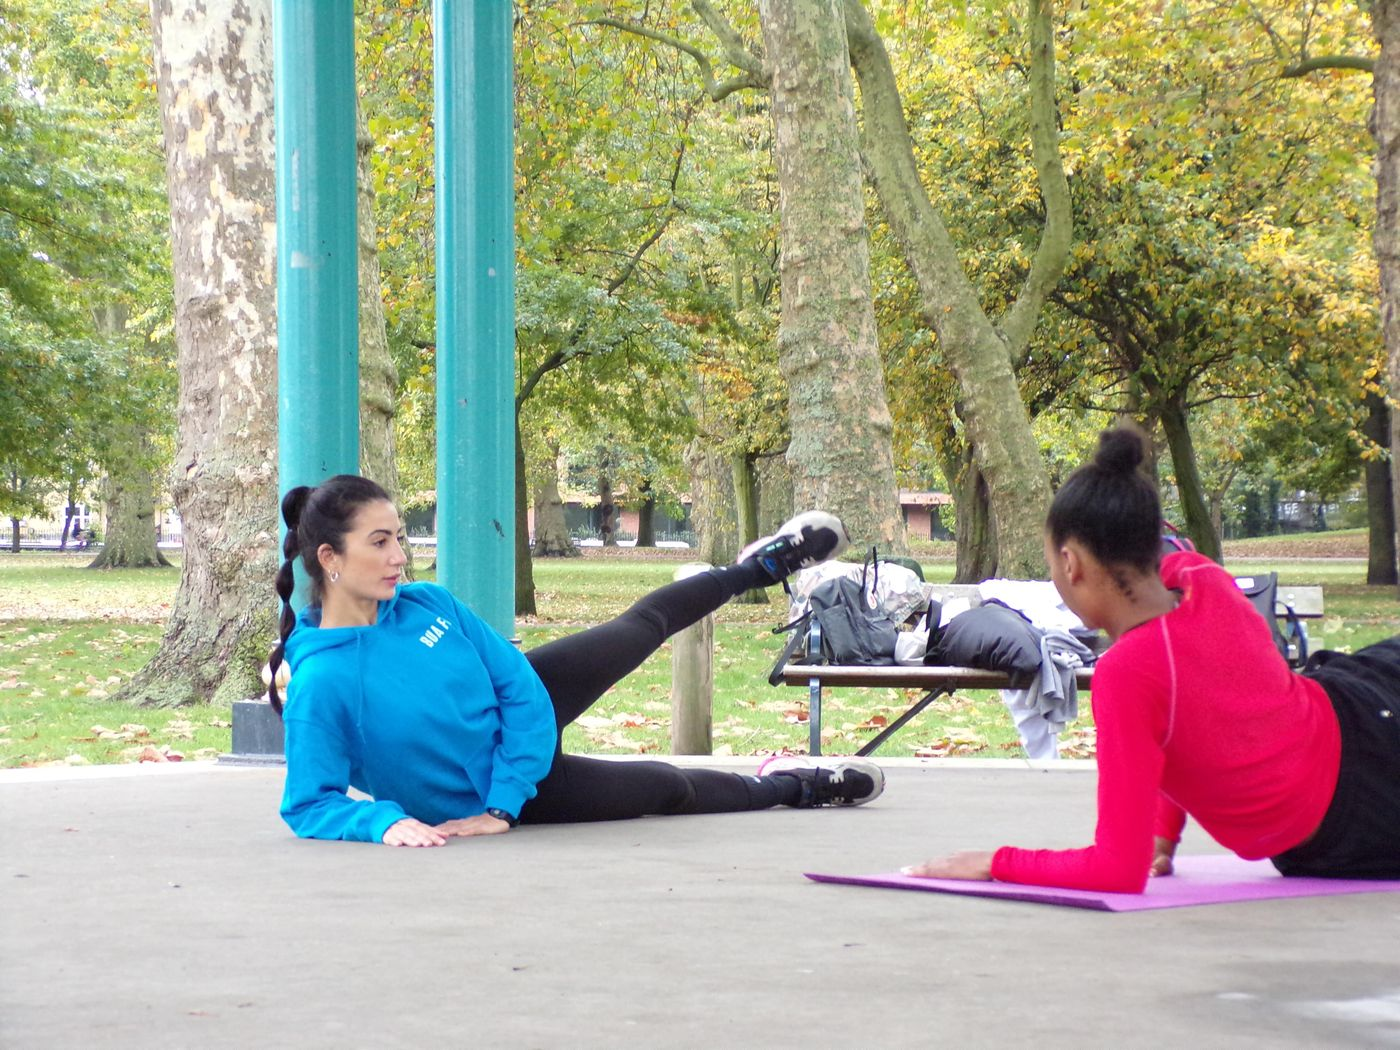 🍁🍂 Pilates outdoor 🍂🍁 